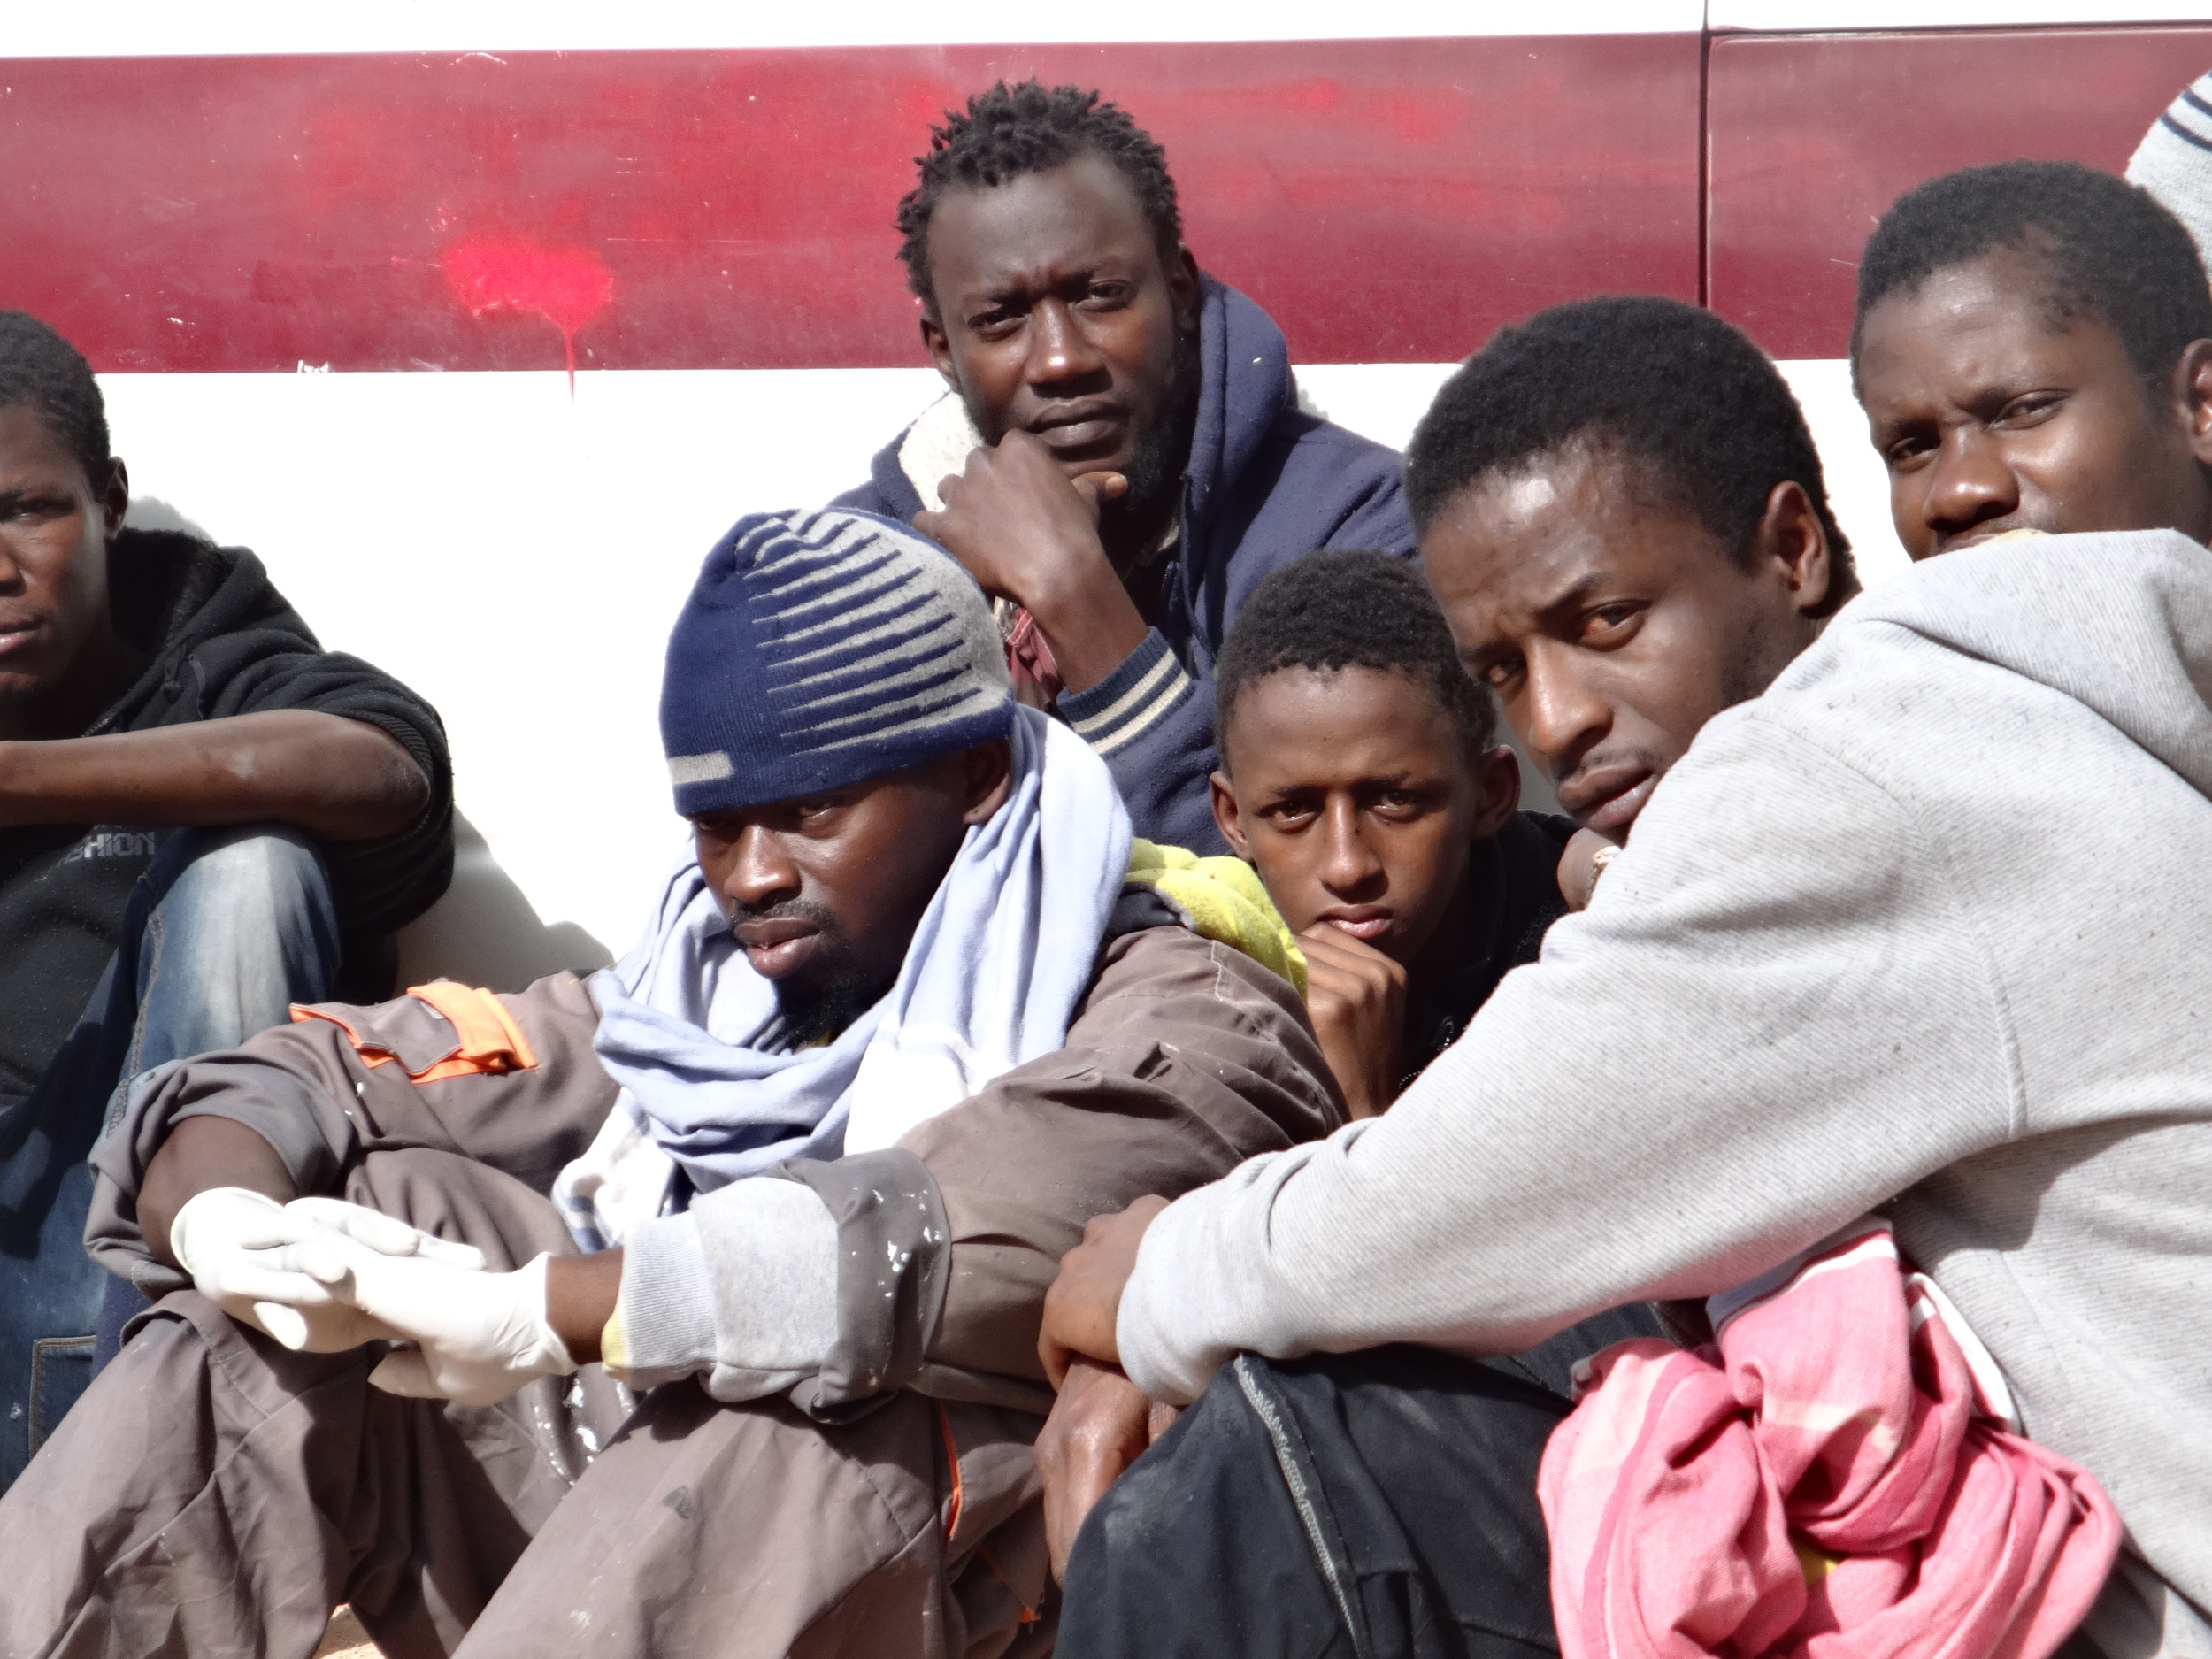 Migrants gather outside the detention centre